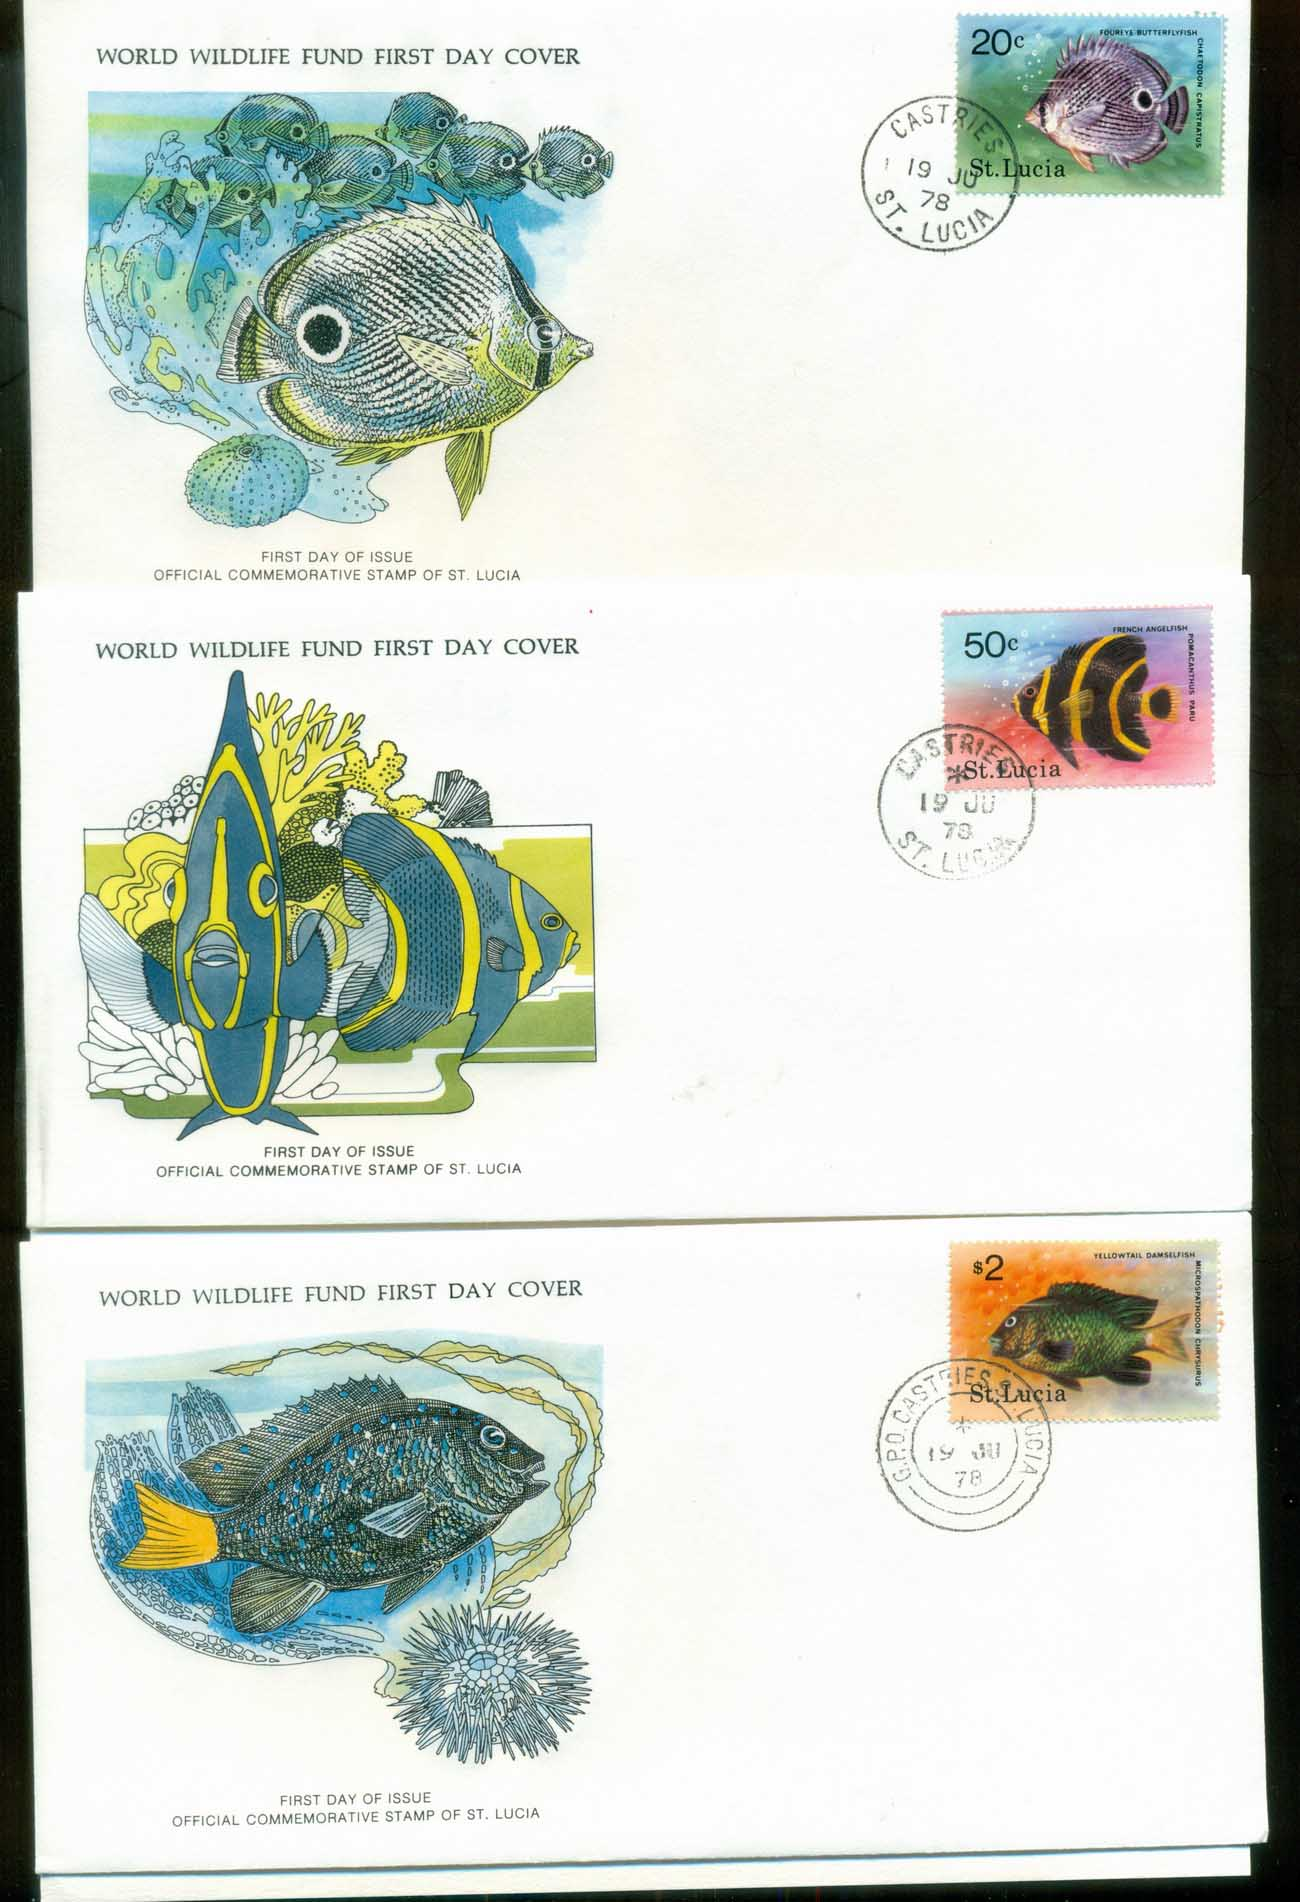 St Lucia 1978 WWF,Marine Life, Fish ,Franlkin Mint (with inserts) 3xFDC lot79623